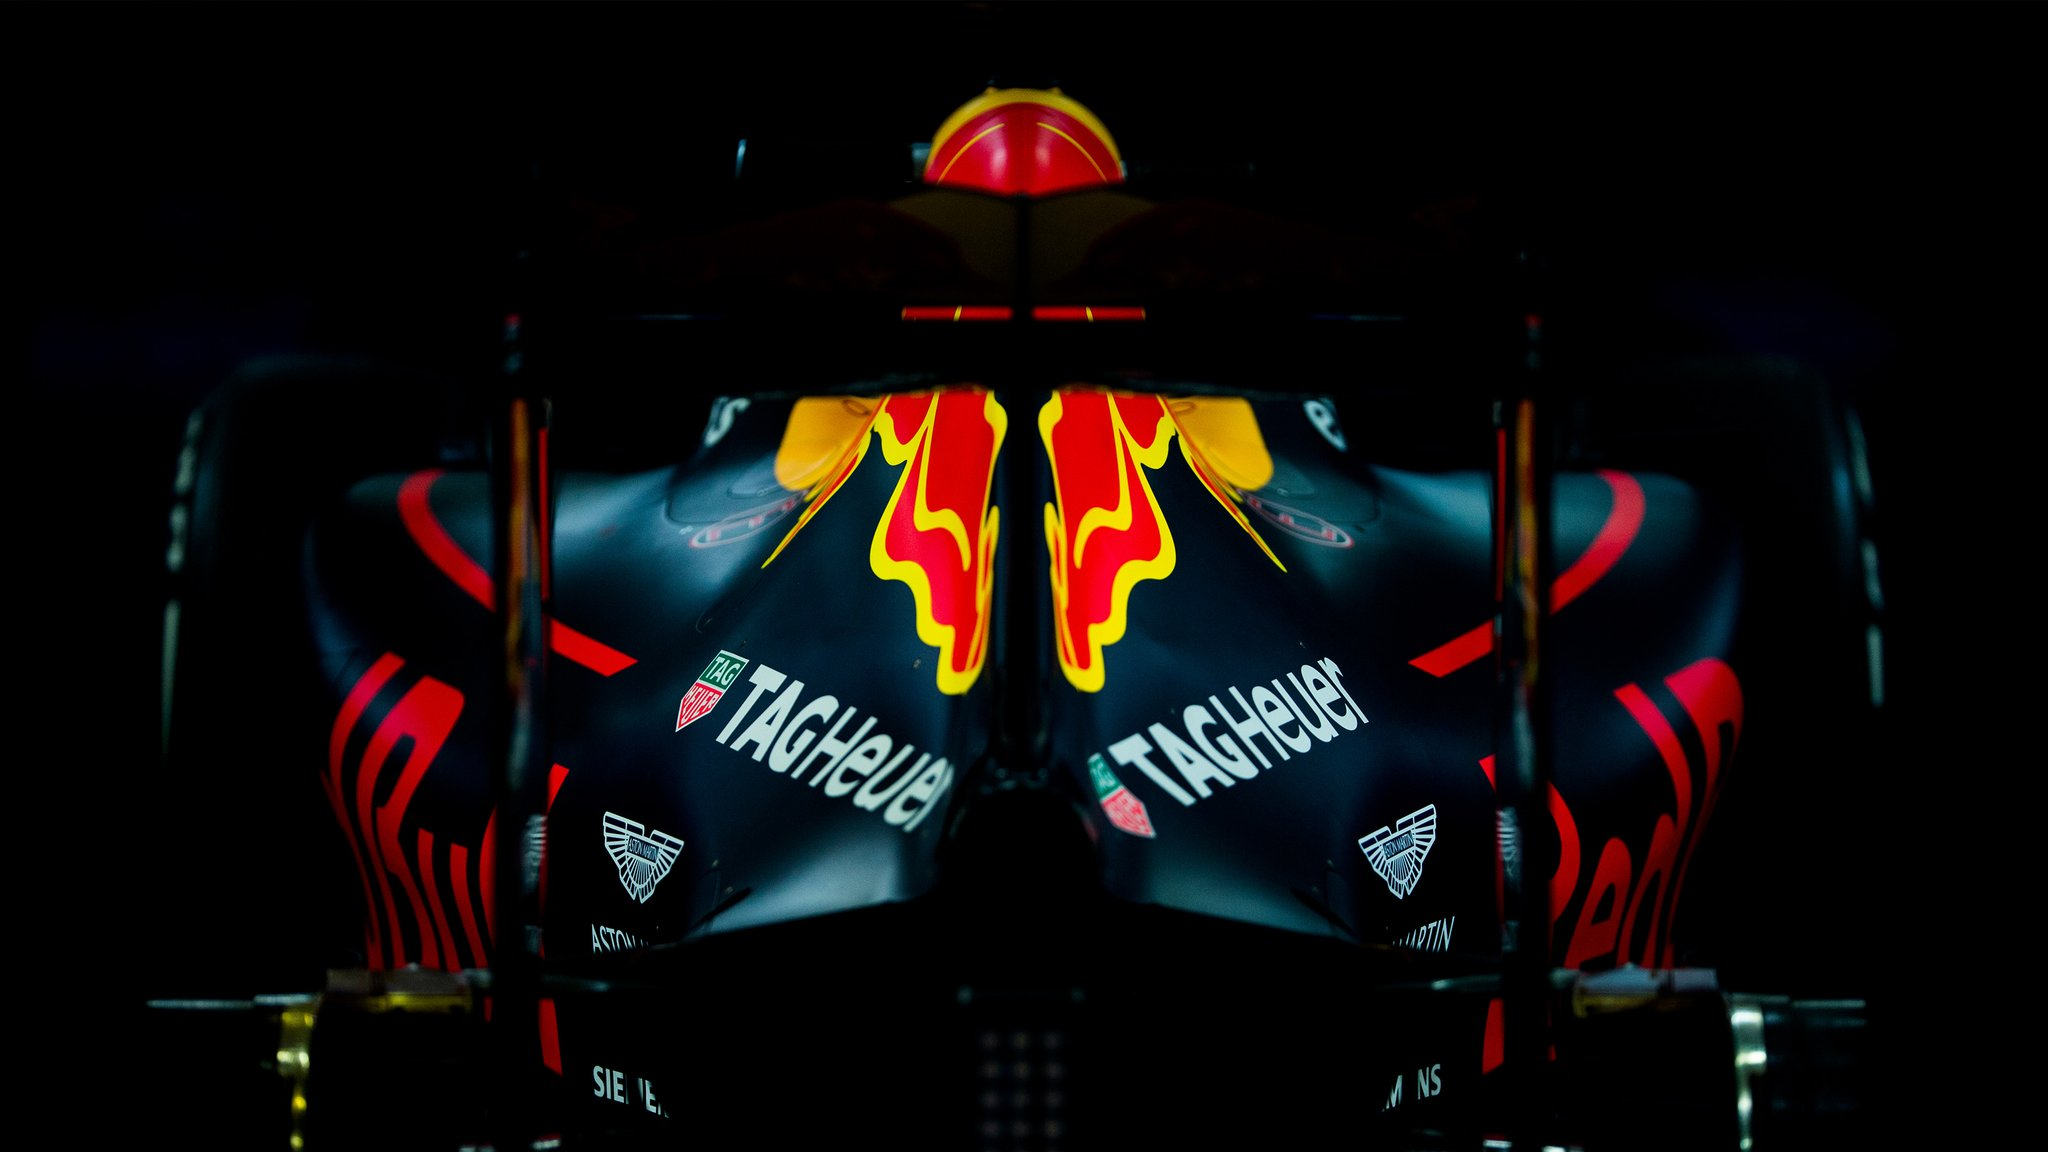 f1 red bull racing et tag heuer prolongent leur partenariat du naming moteur jusqu 39 en 2018. Black Bedroom Furniture Sets. Home Design Ideas